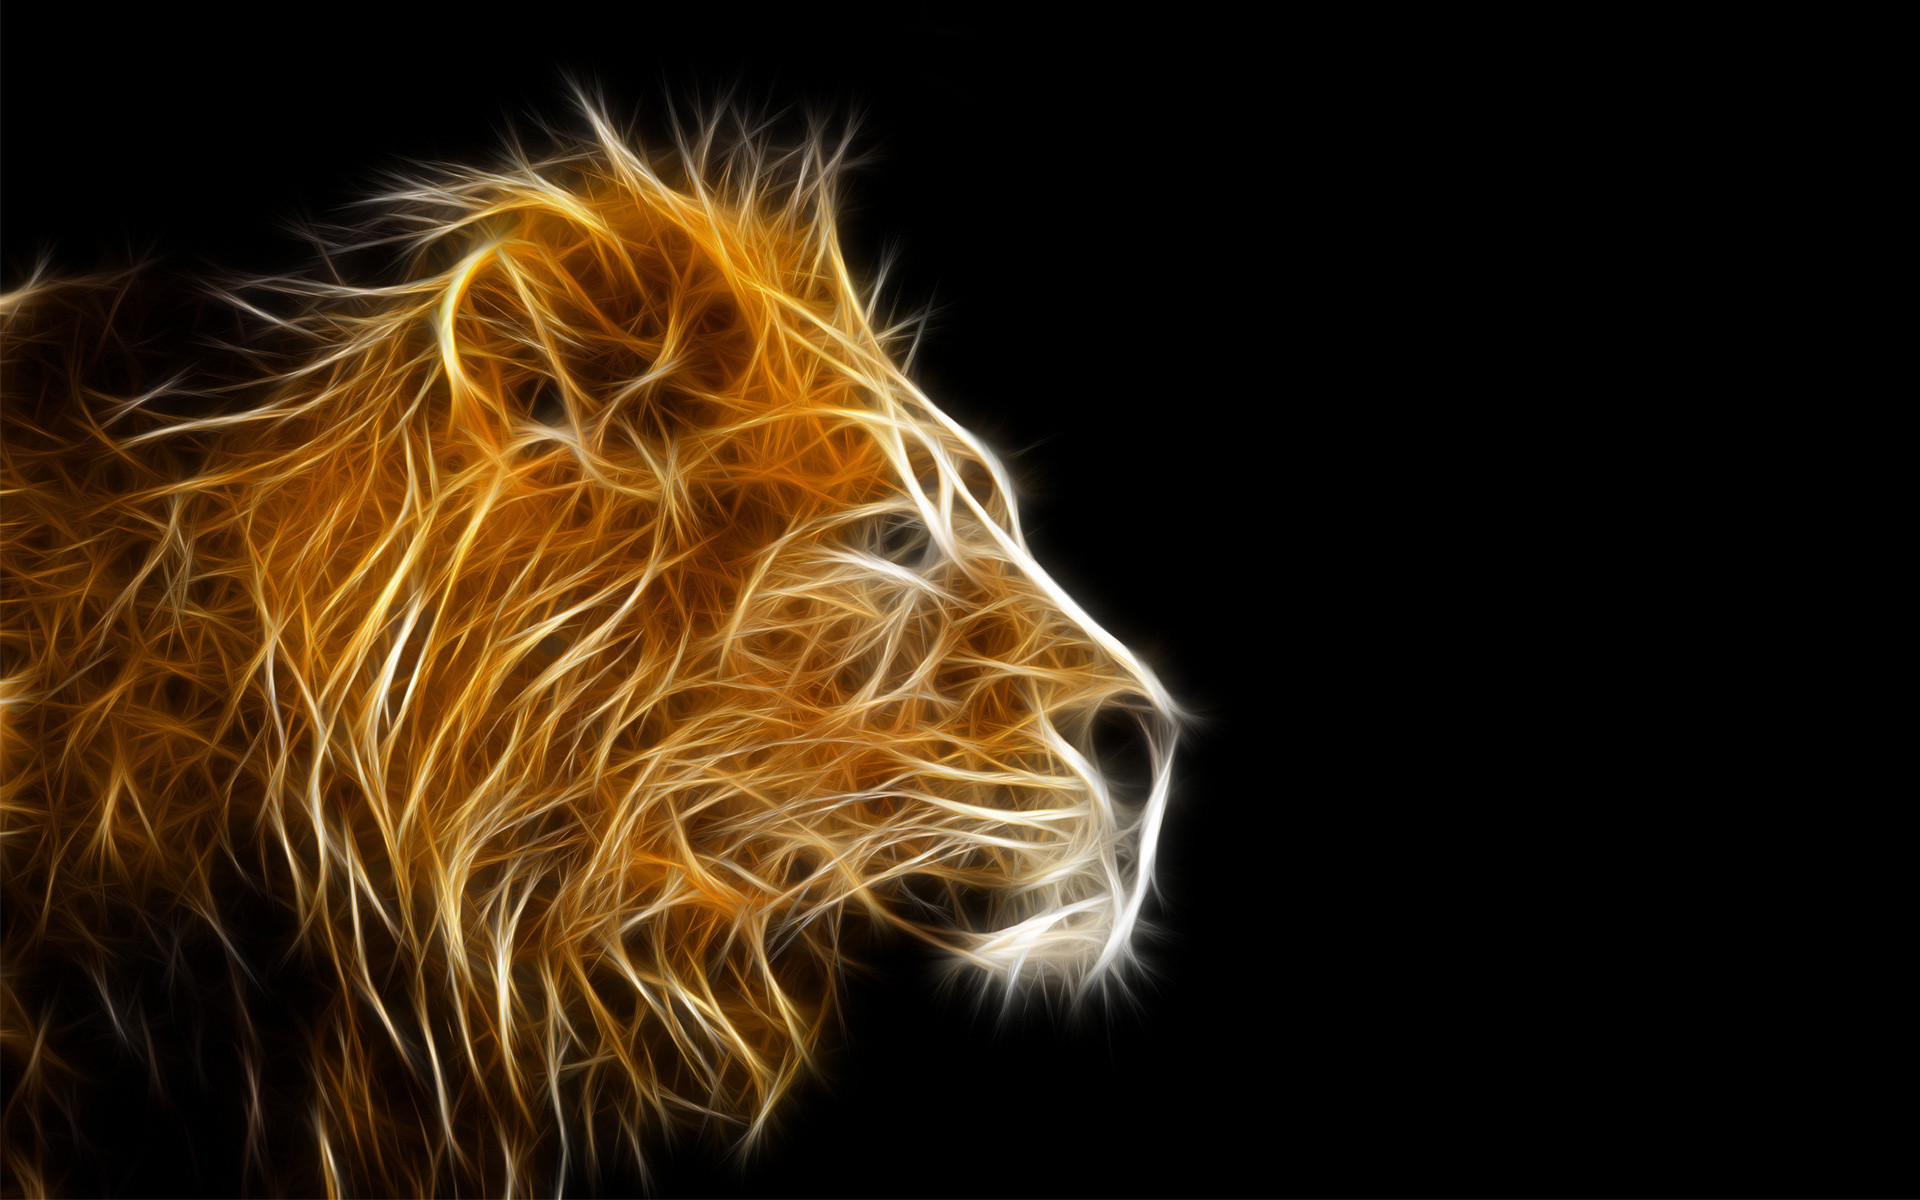 1920x1200 Animal Wallpaper: Lion Wallpaper Black And White Wallpaper Mobile with High  Resolution